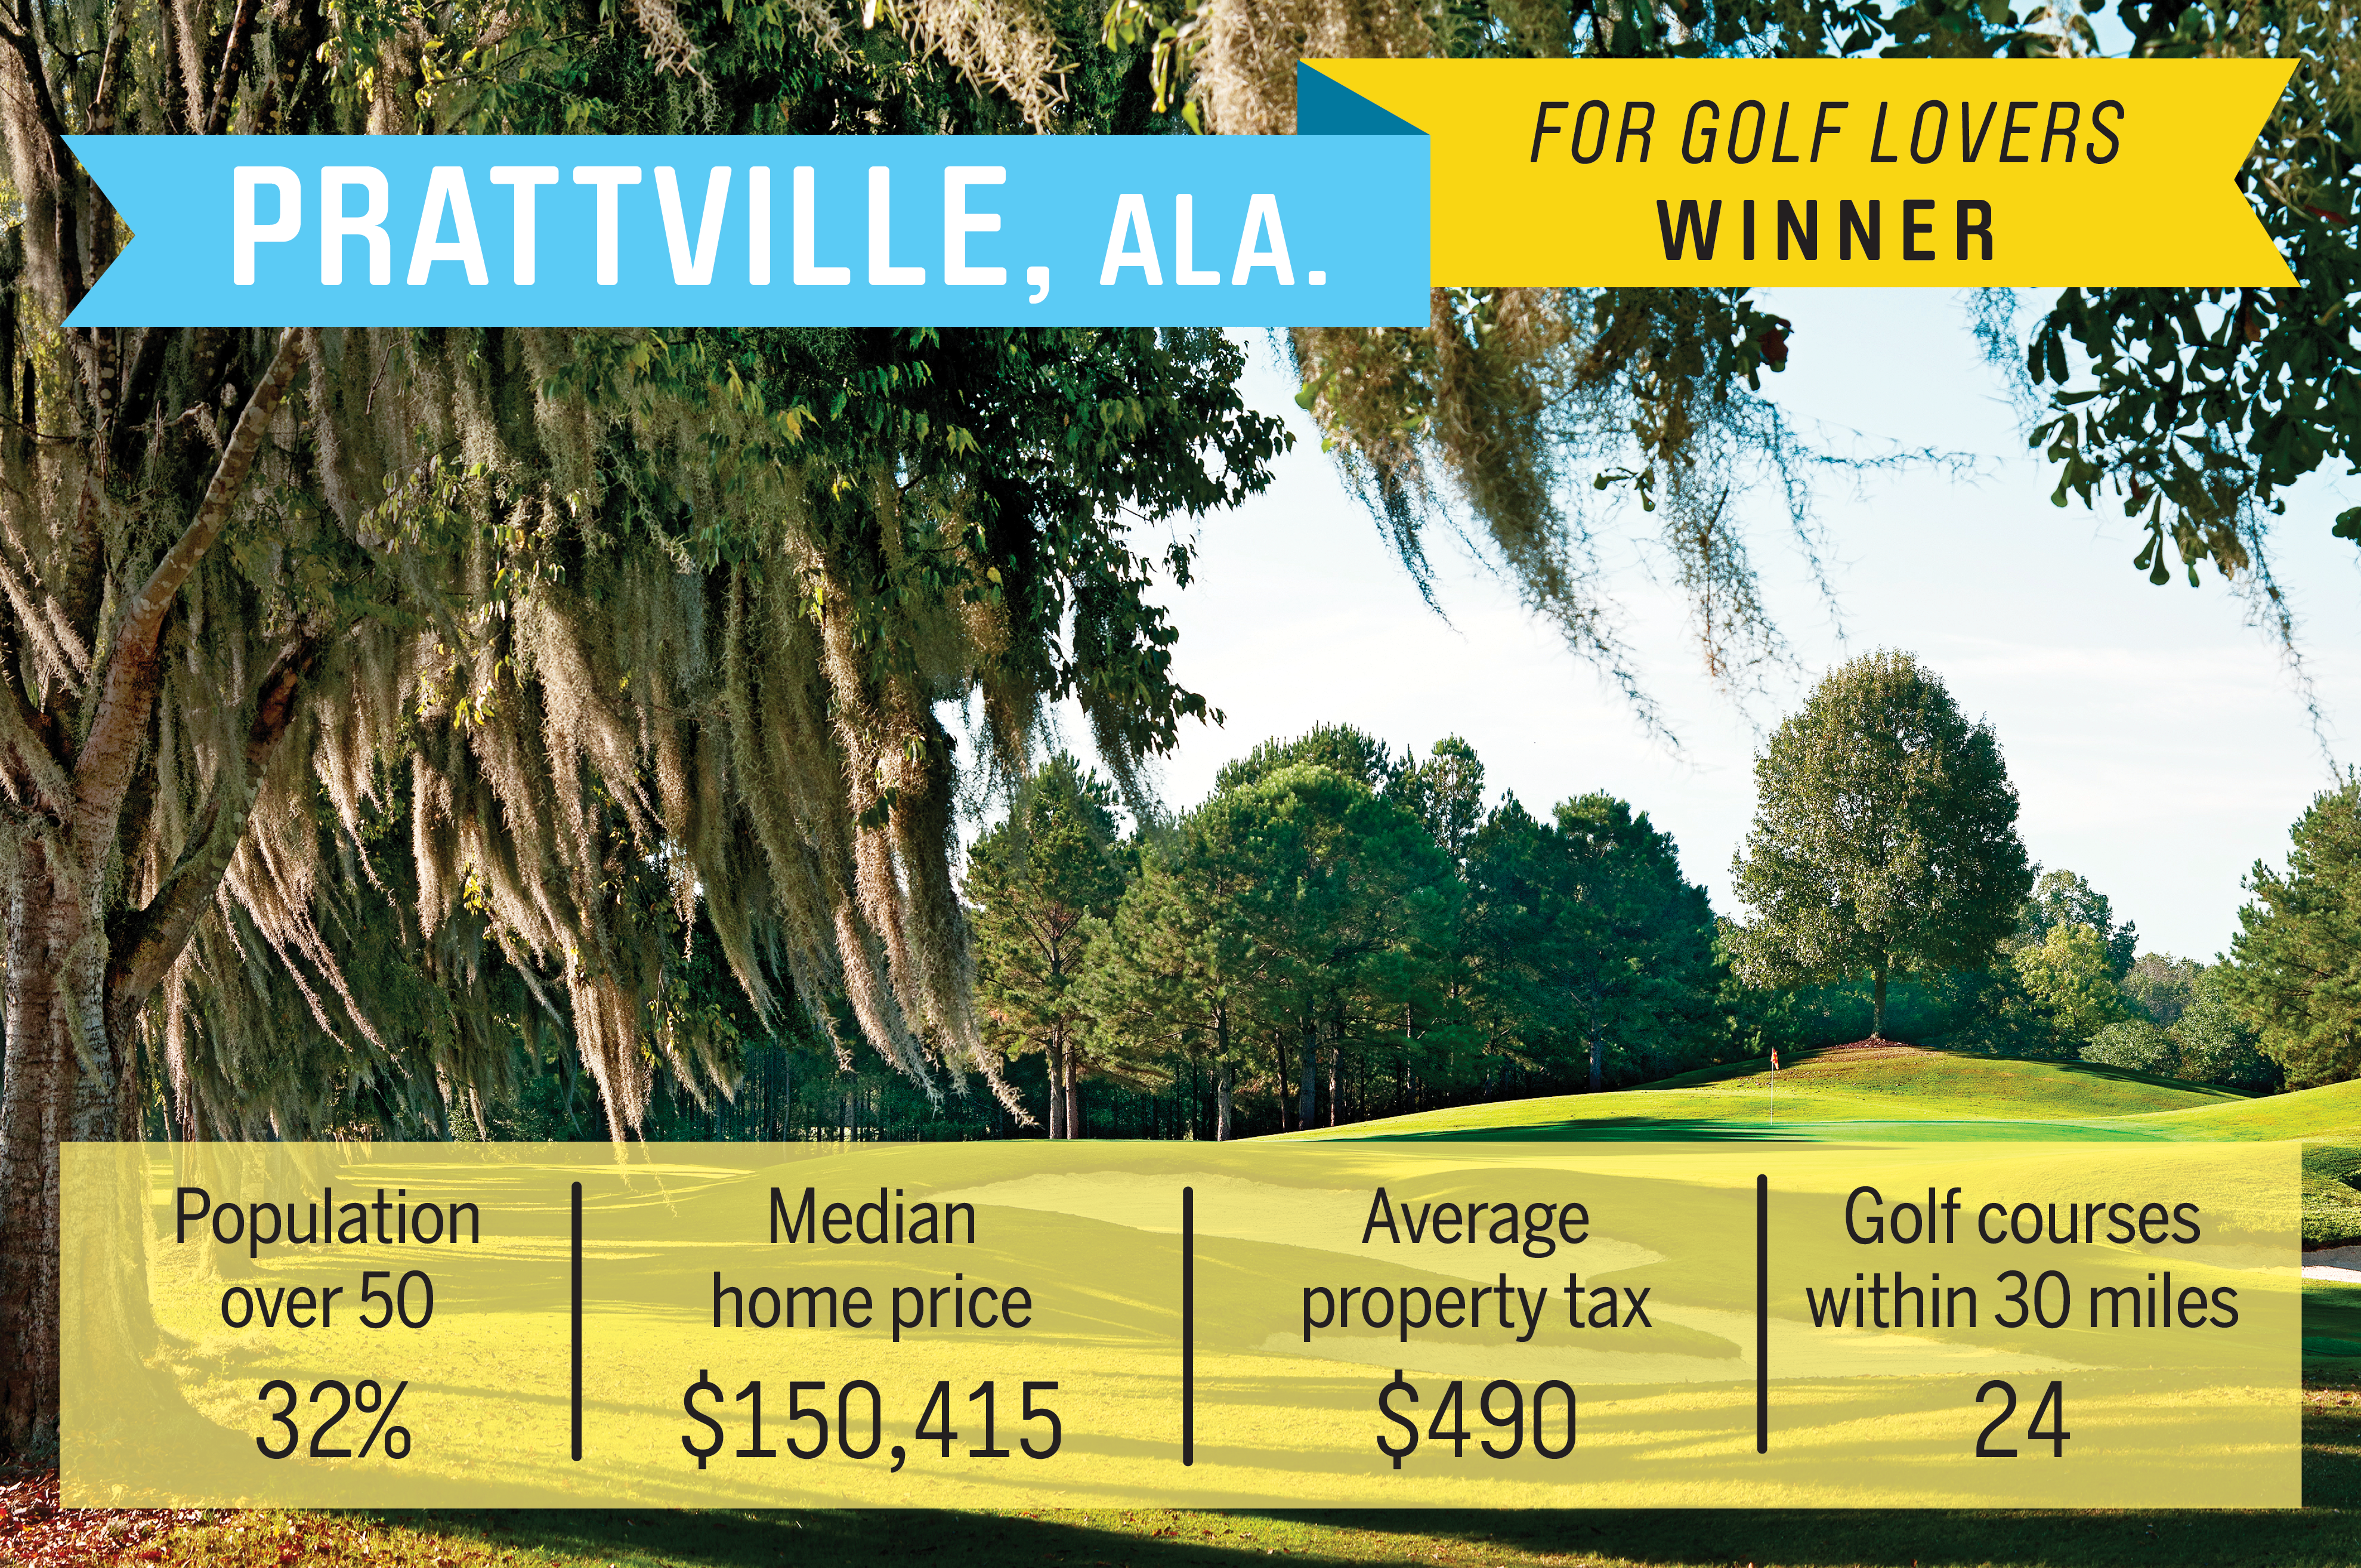 Home to three championship public golf courses and spectacular views of the Alabama River, Prattville sits in the middle of the Robert Trent Jones Golf Trail which stretches across 11 sites in Alabama. The median home price is just over $150,000, and the average annual property tax is just $490.